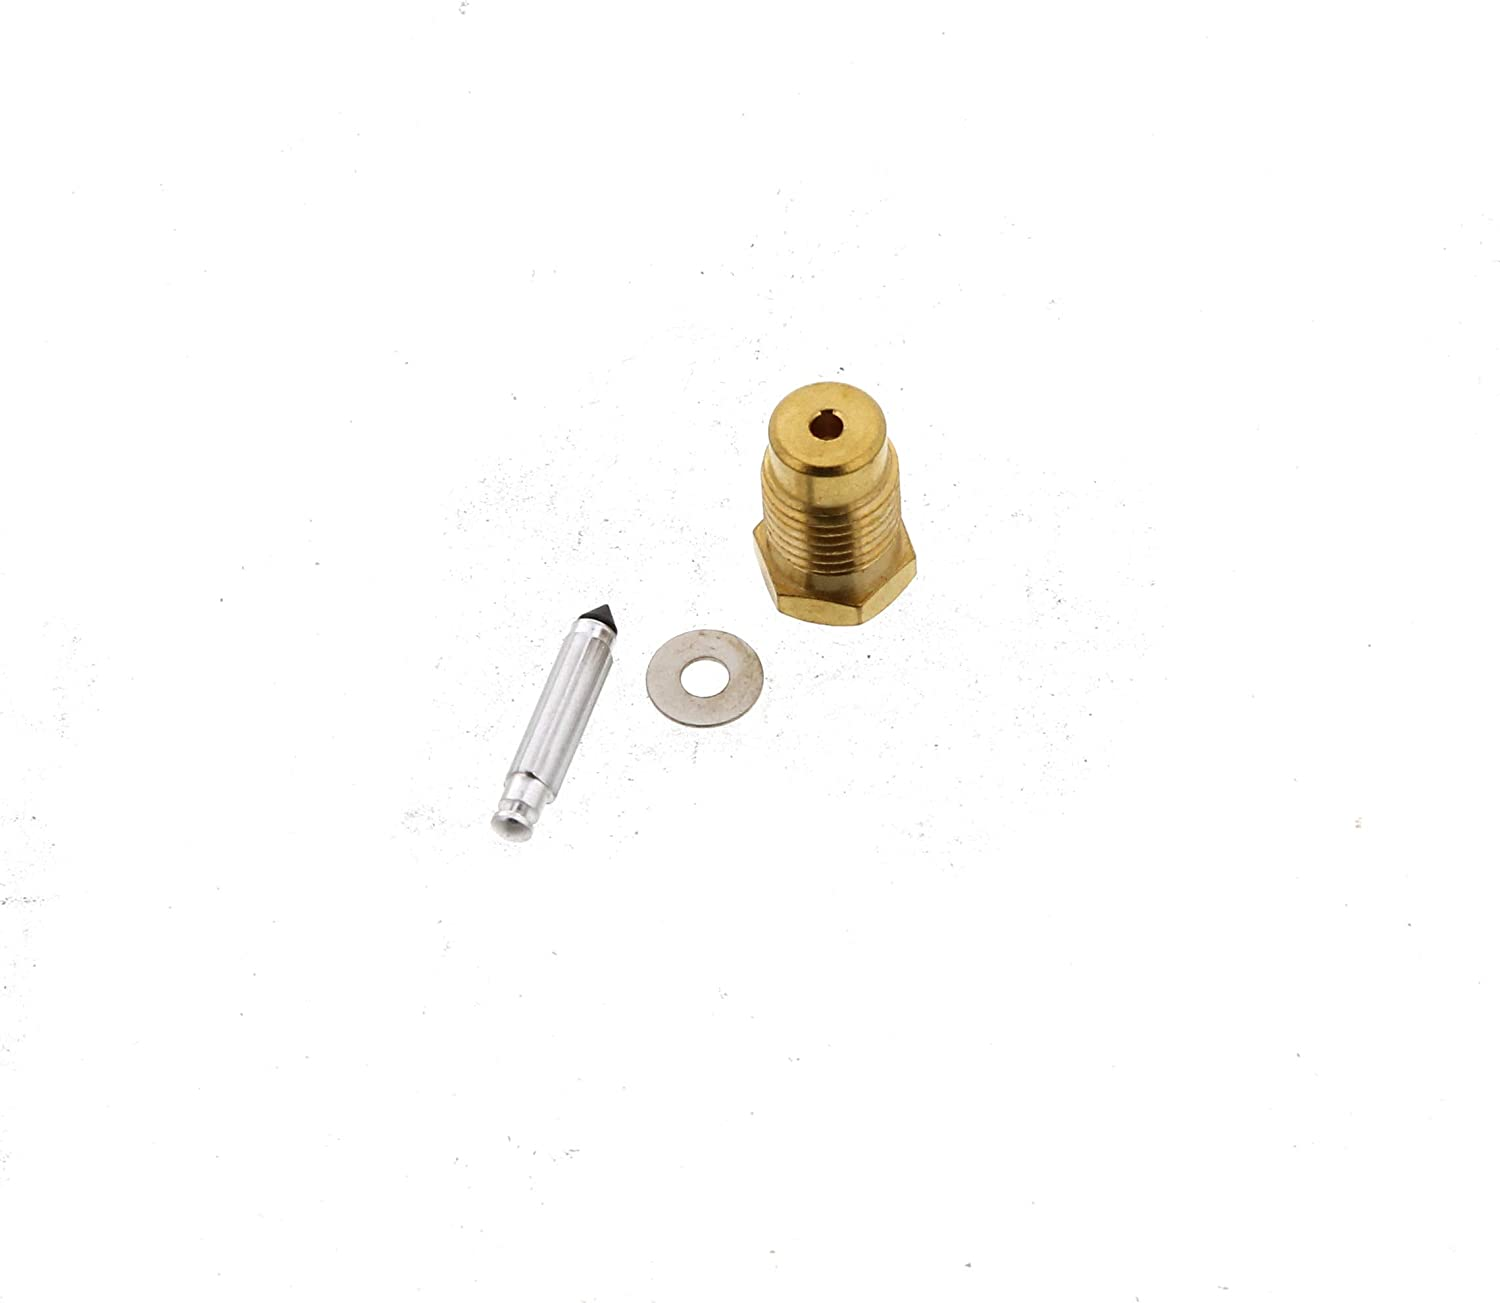 Needle and Seat Kit OME 233-782 by Indefinitely # Race-Driven Branded goods